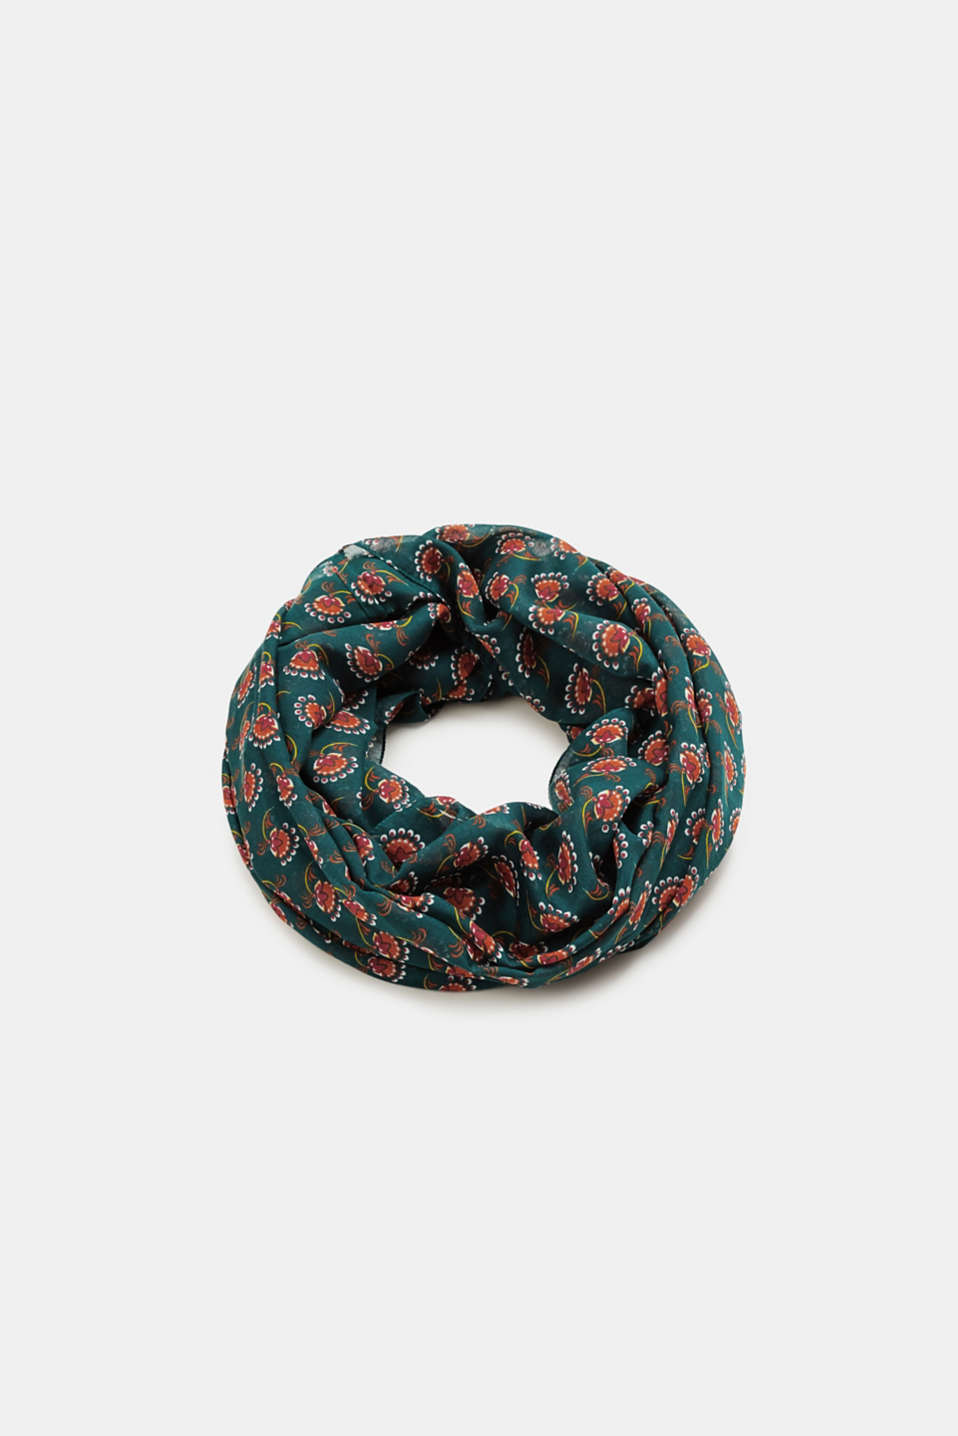 Esprit - Snood with floral print, recycled